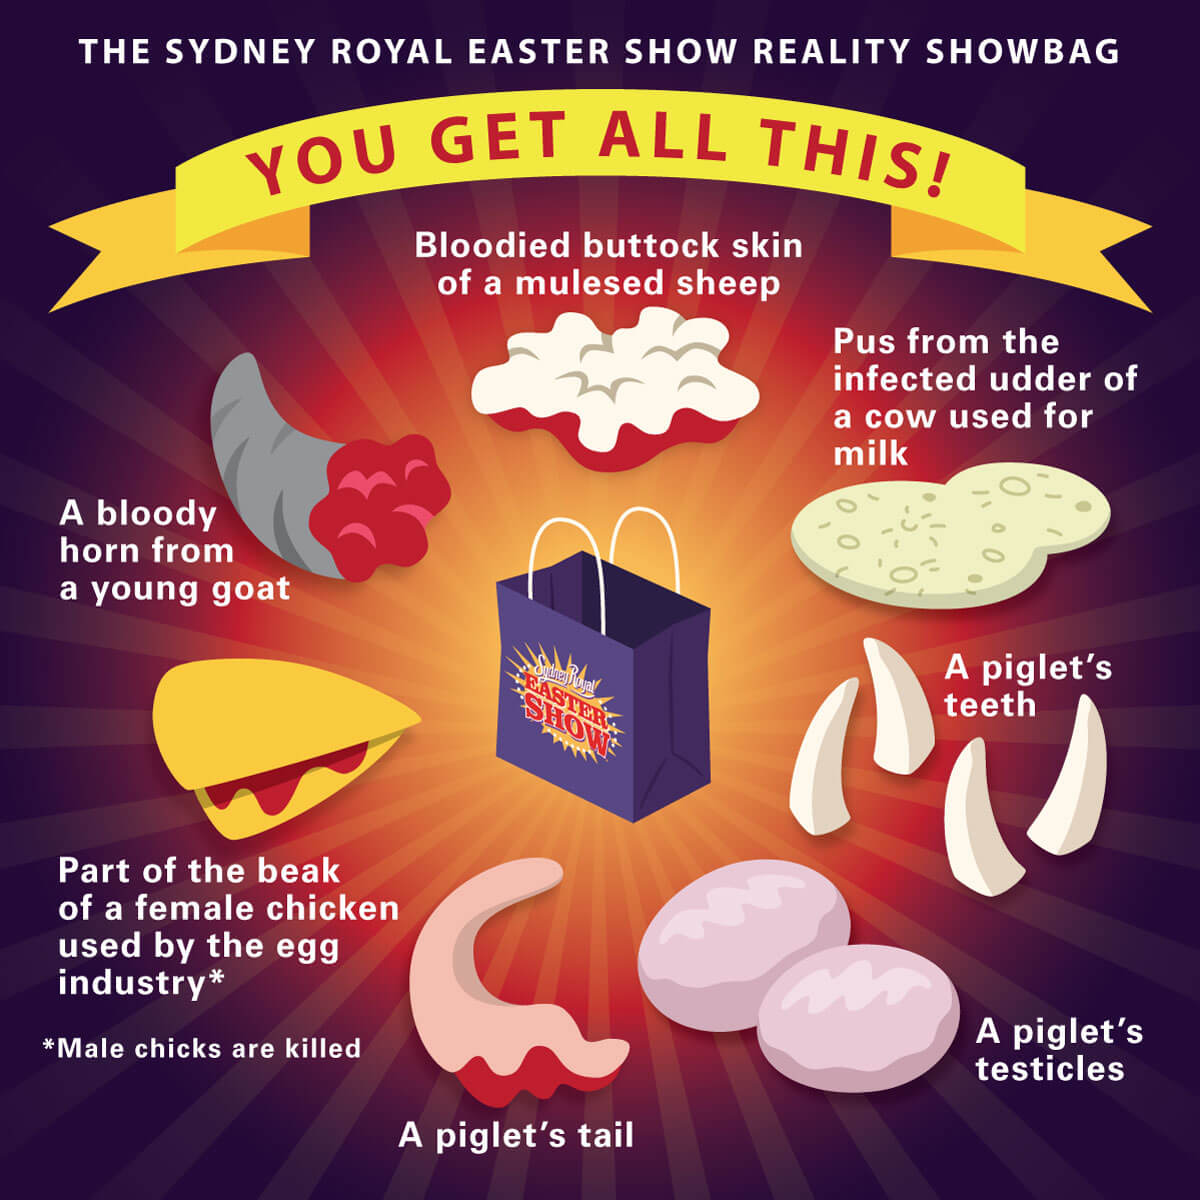 If sydney easter showbags told the gruesome truth negle Images